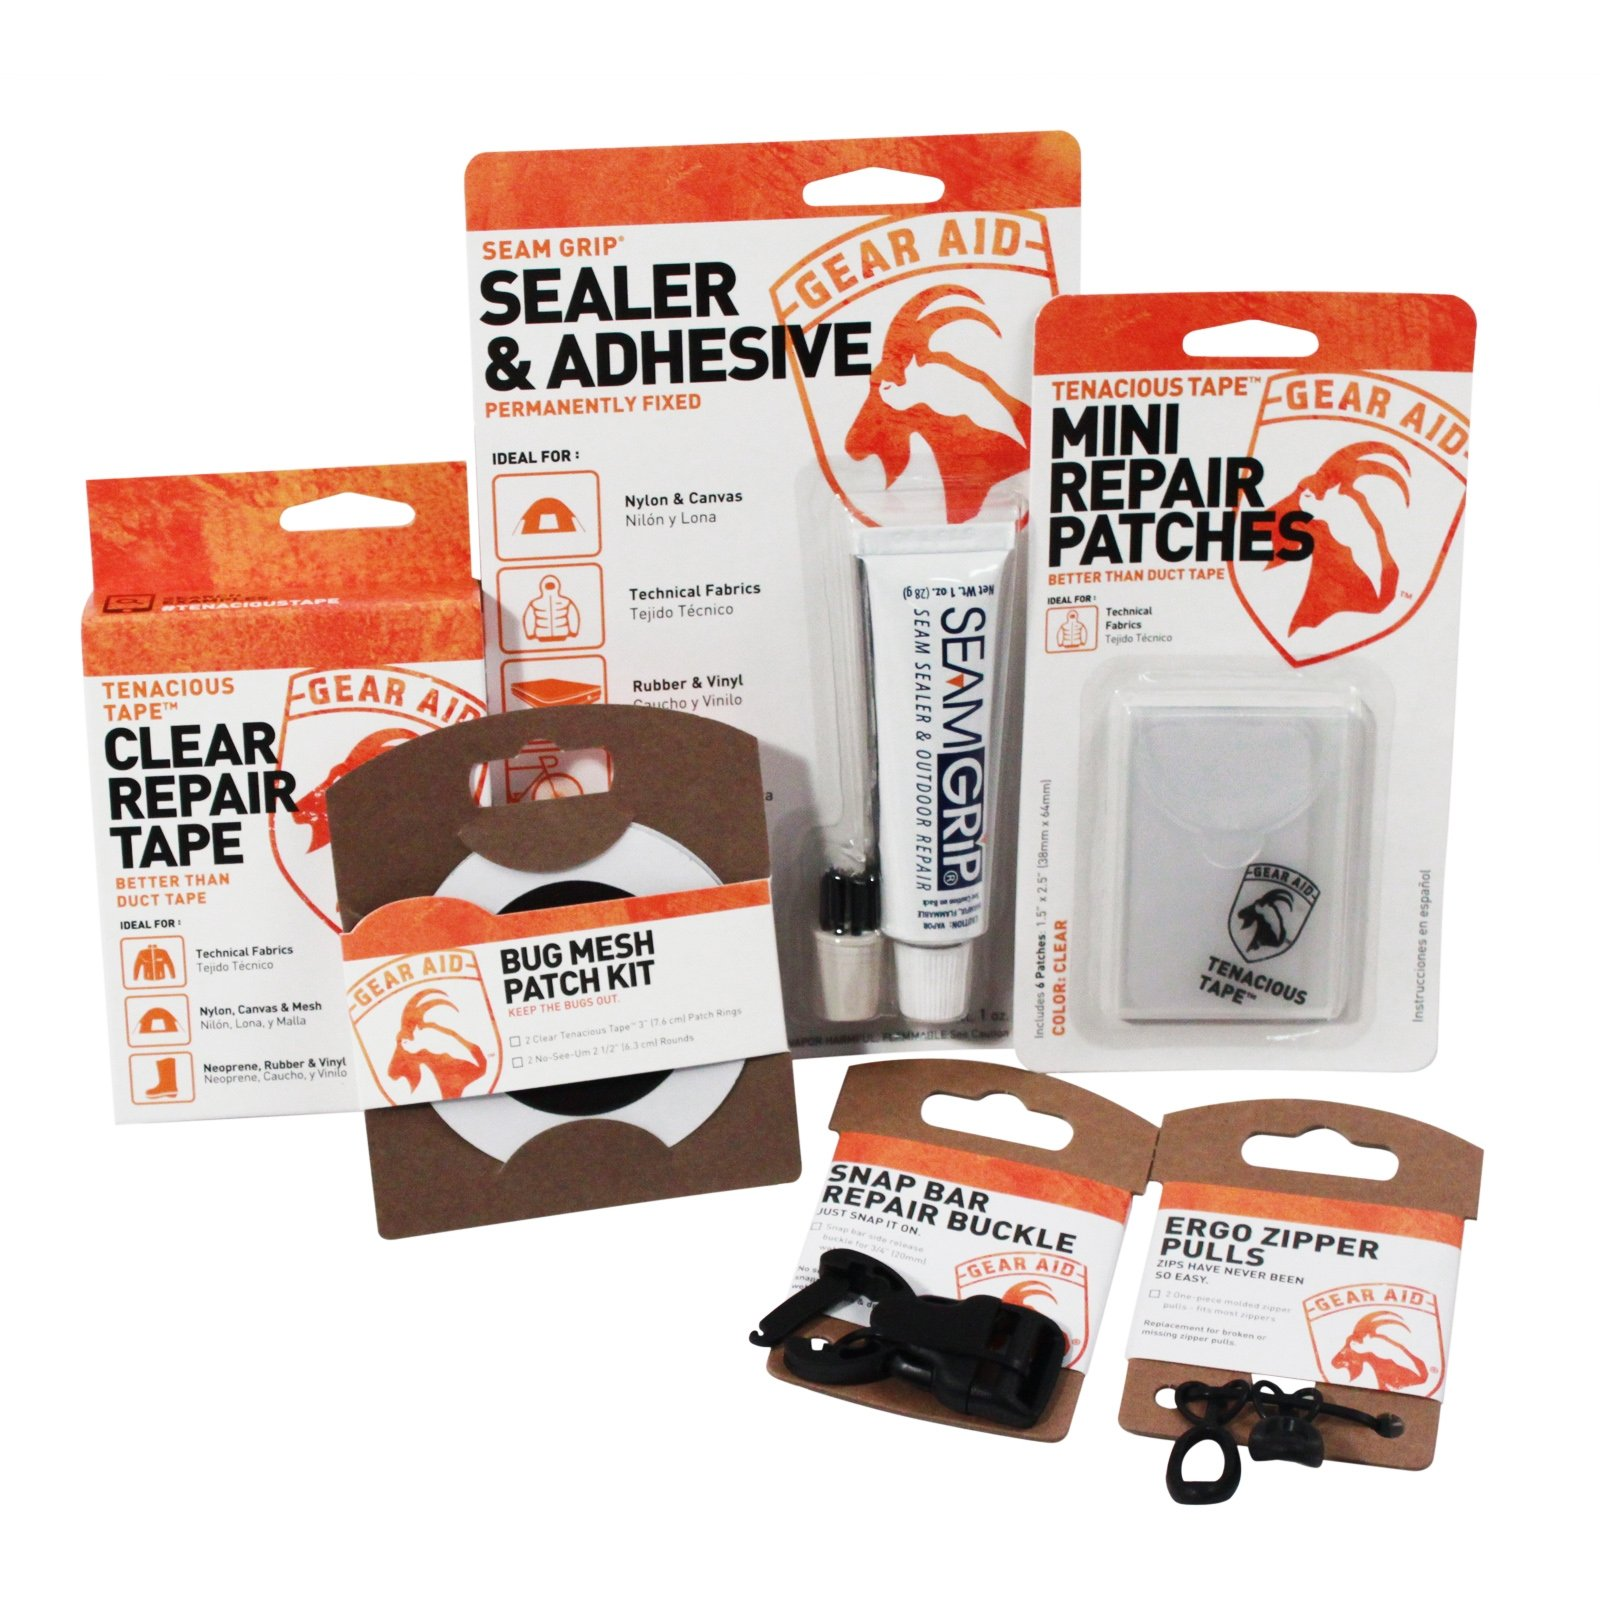 The Complete Outdoor Adventure Camping Equipment Repair Kit By Gear Aid